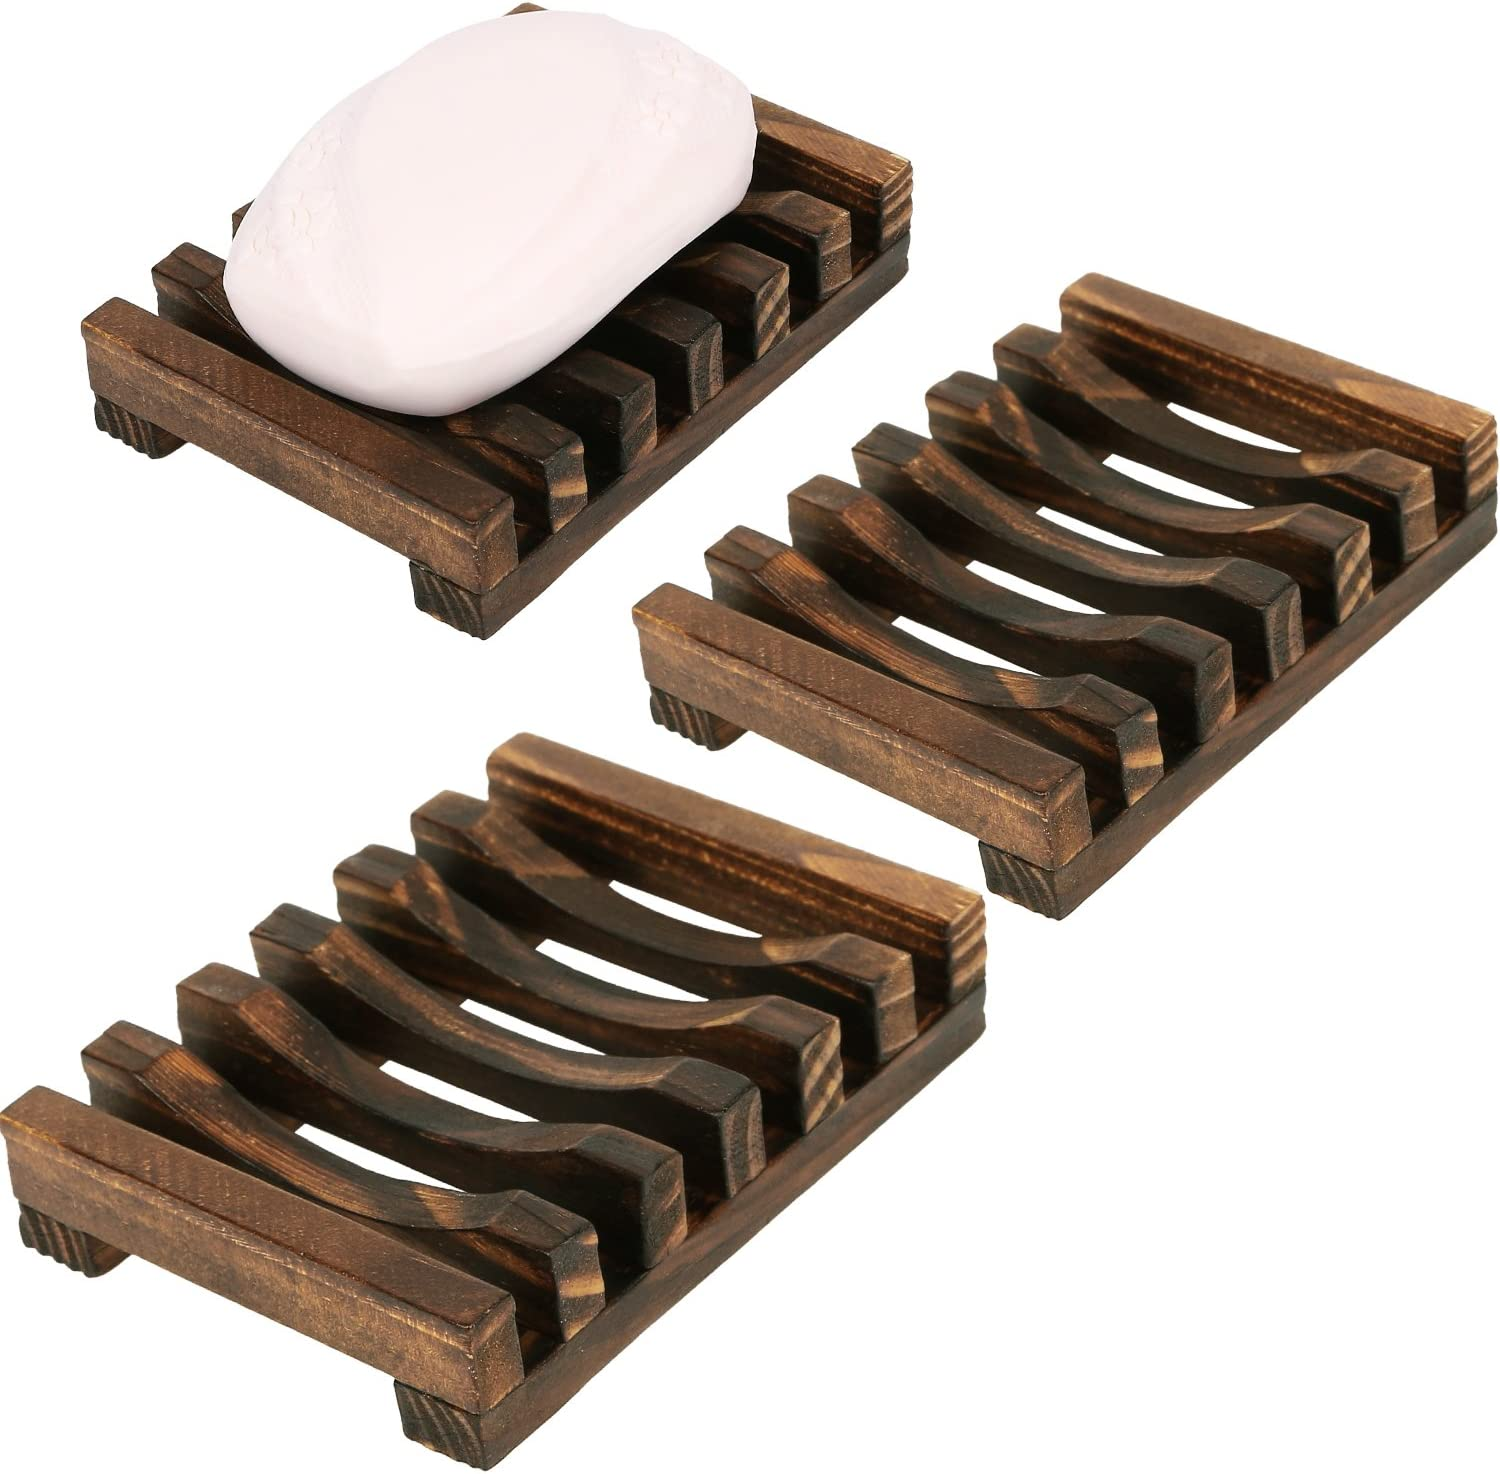 Anwenk 3Pack Soap Dish Wooden Soap Saver Holder Soap Tray for Bathroom Shower Rectangular Sink Drainer Hand Craft for Soap,Sponges and More